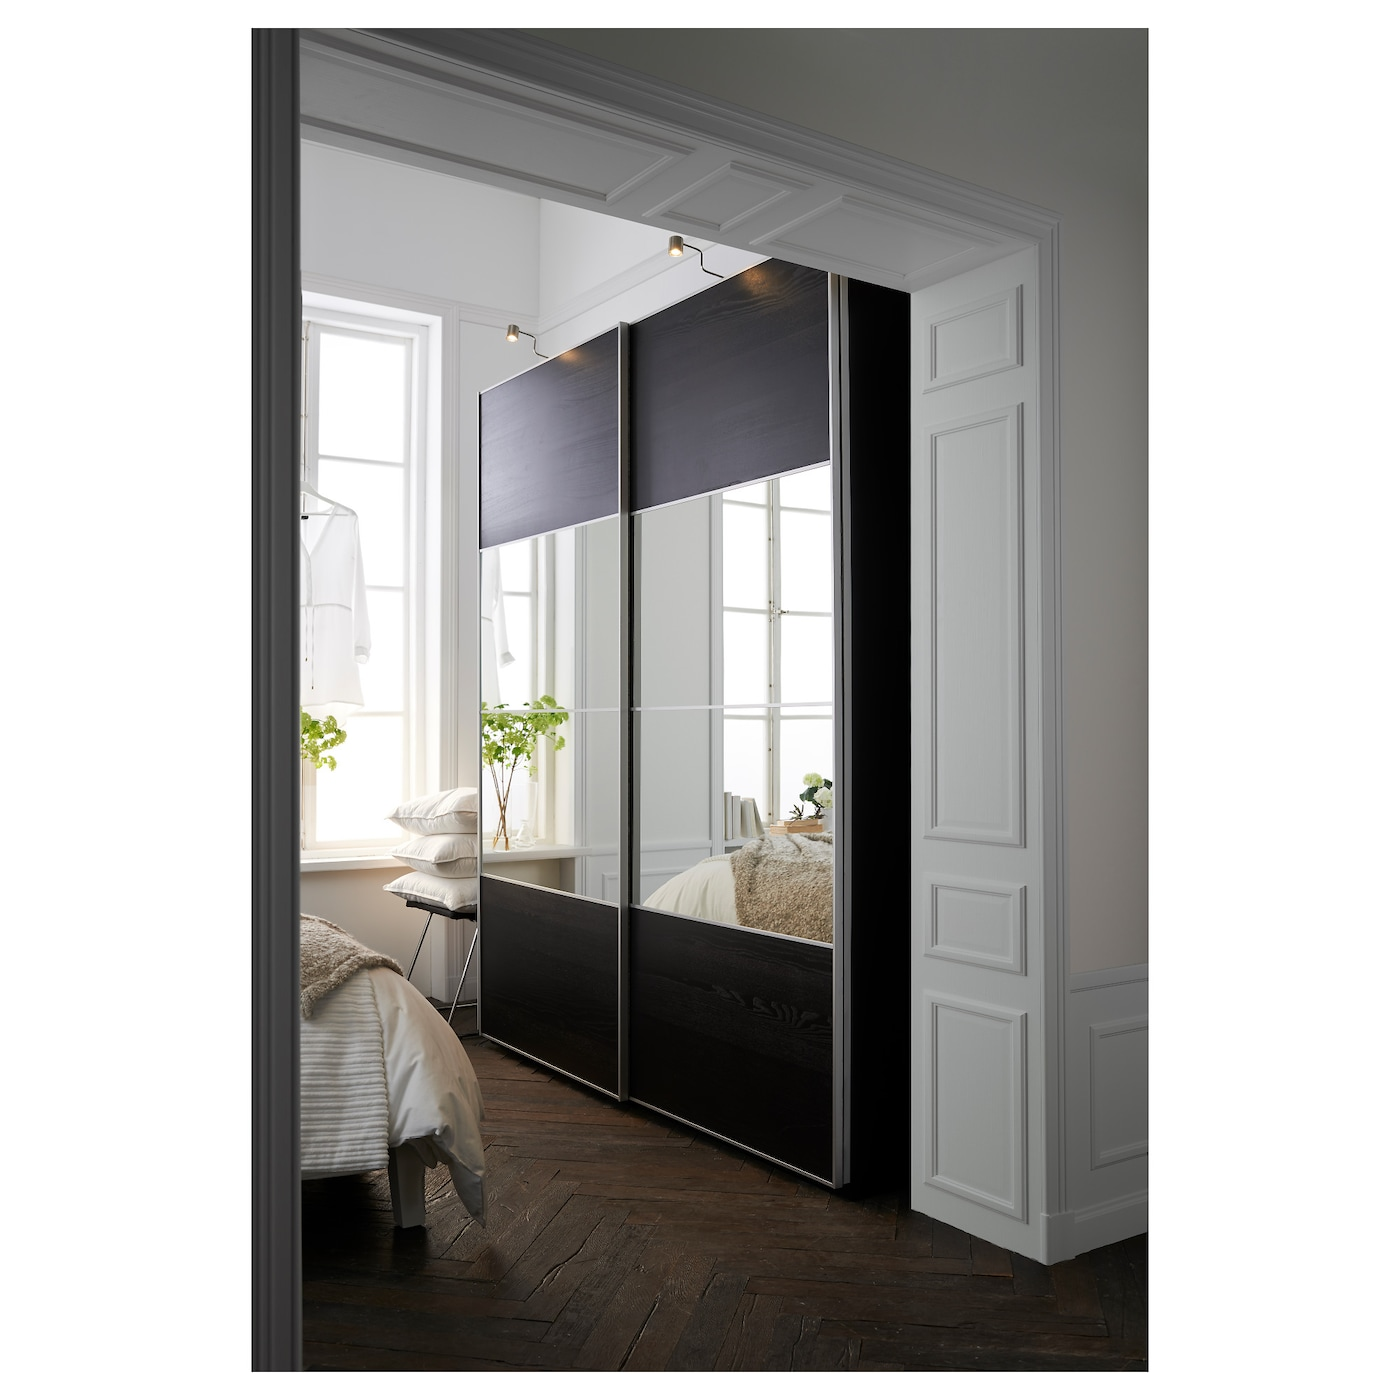 Pax wardrobe black brown auli ilseng 200x66x236 cm ikea for Armoire dressing avec portes coulissantes